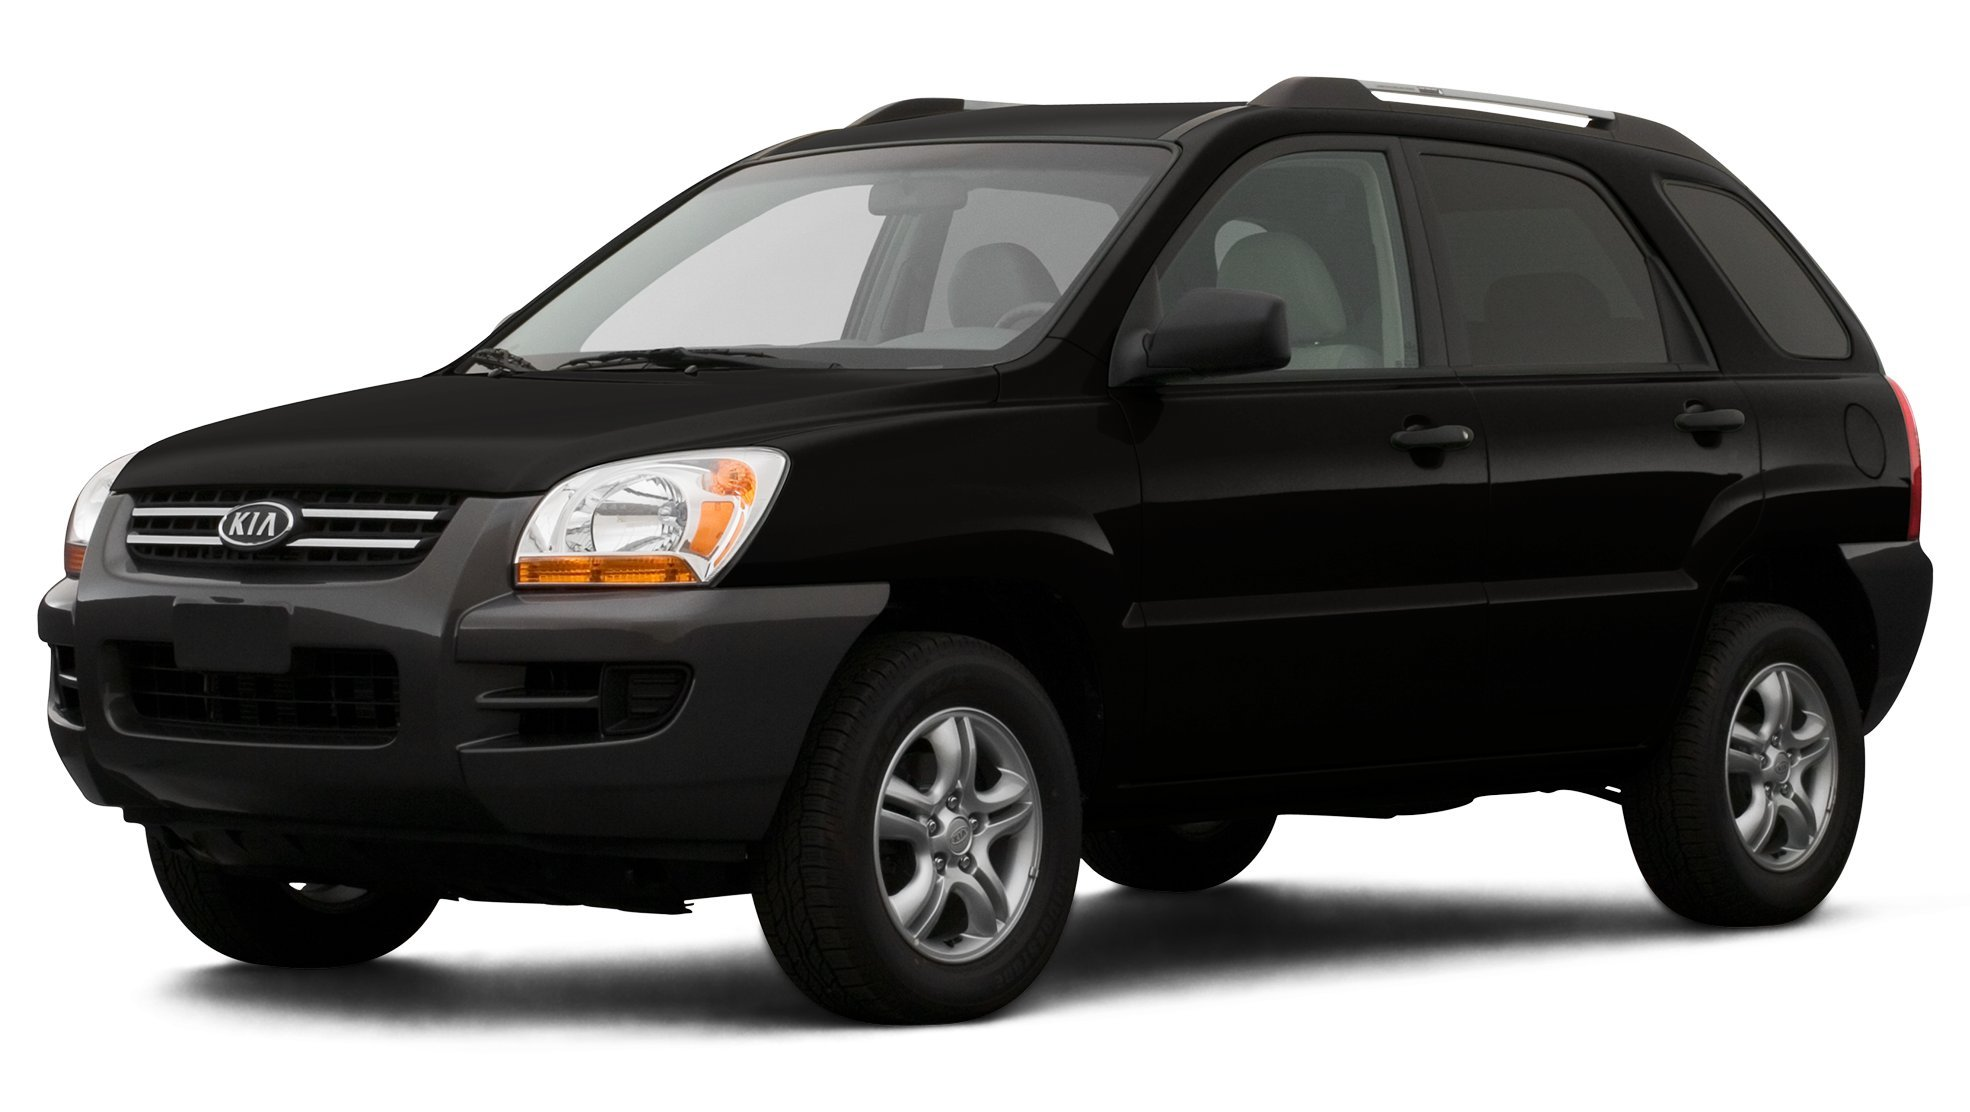 2007 saturn vue reviews images and specs. Black Bedroom Furniture Sets. Home Design Ideas